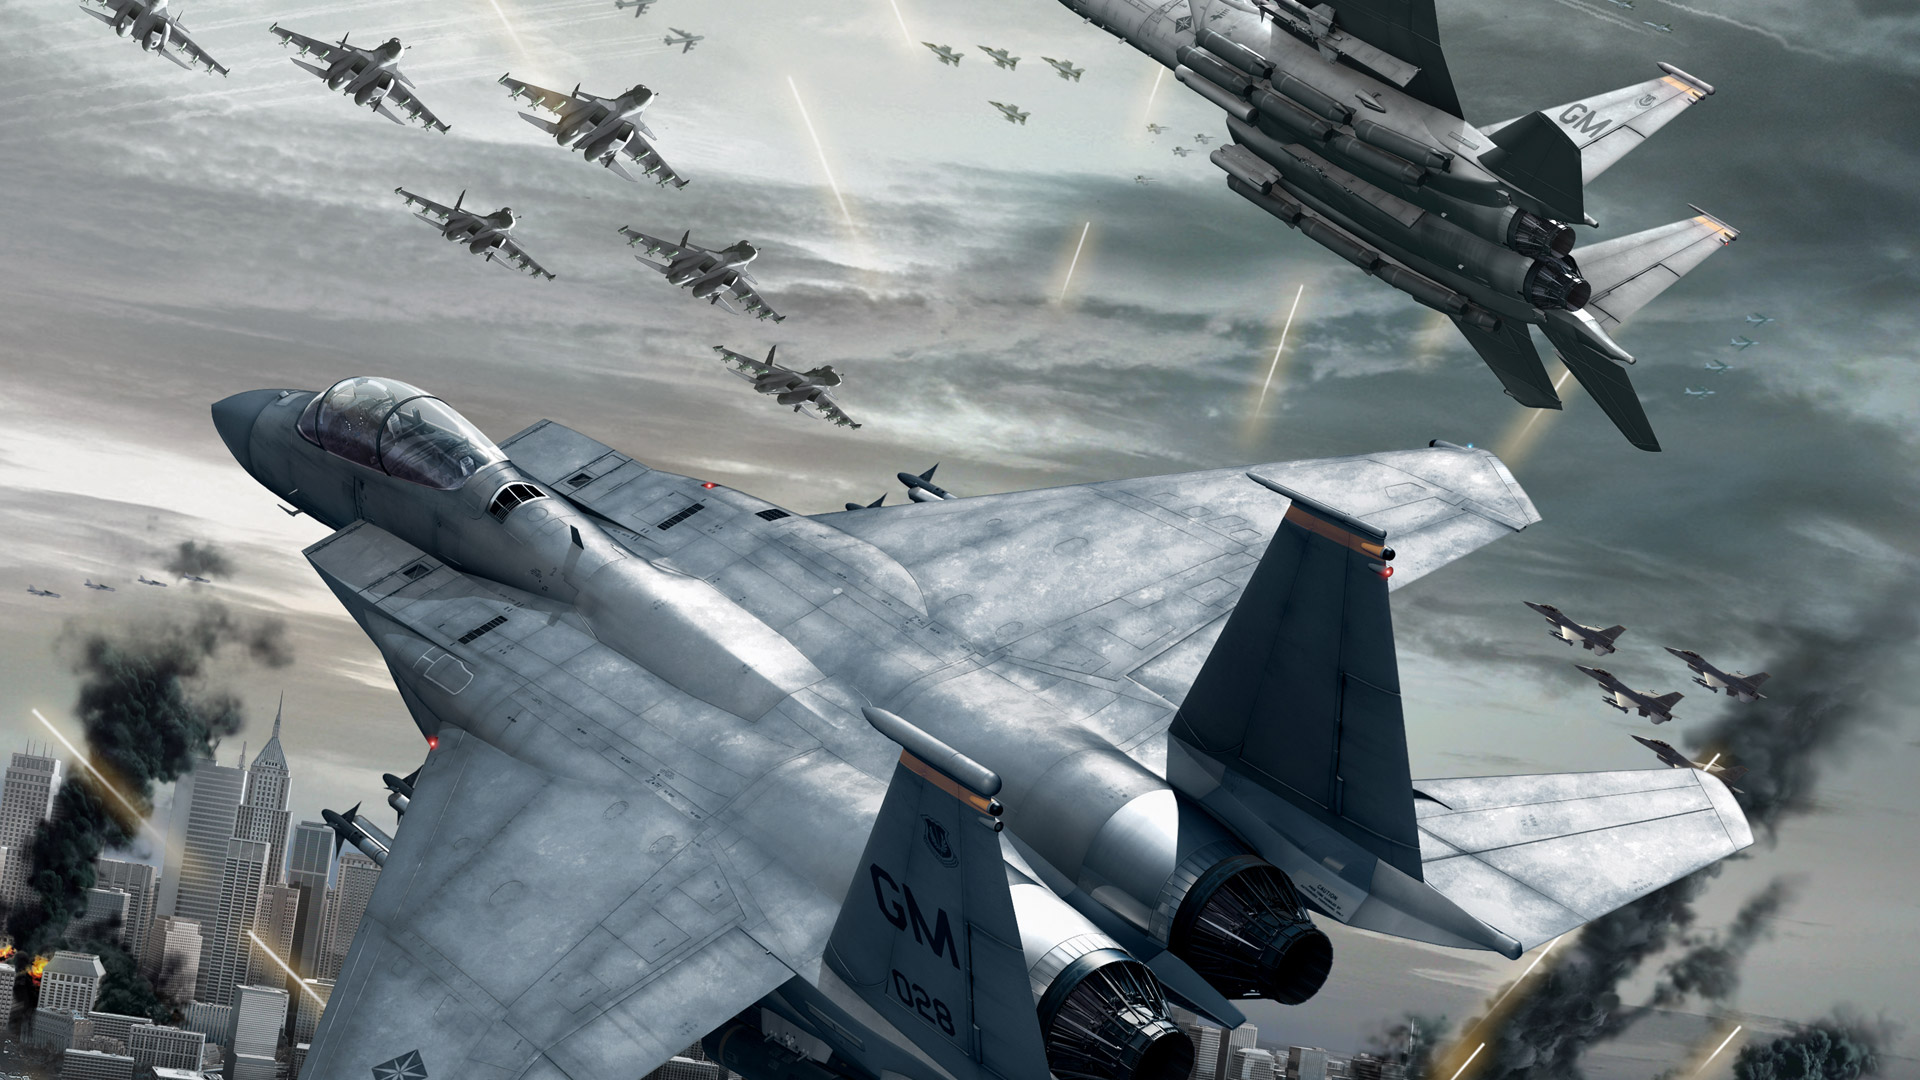 Ace Combat 6: Fires of Liberation Wallpaper in 1920x1080